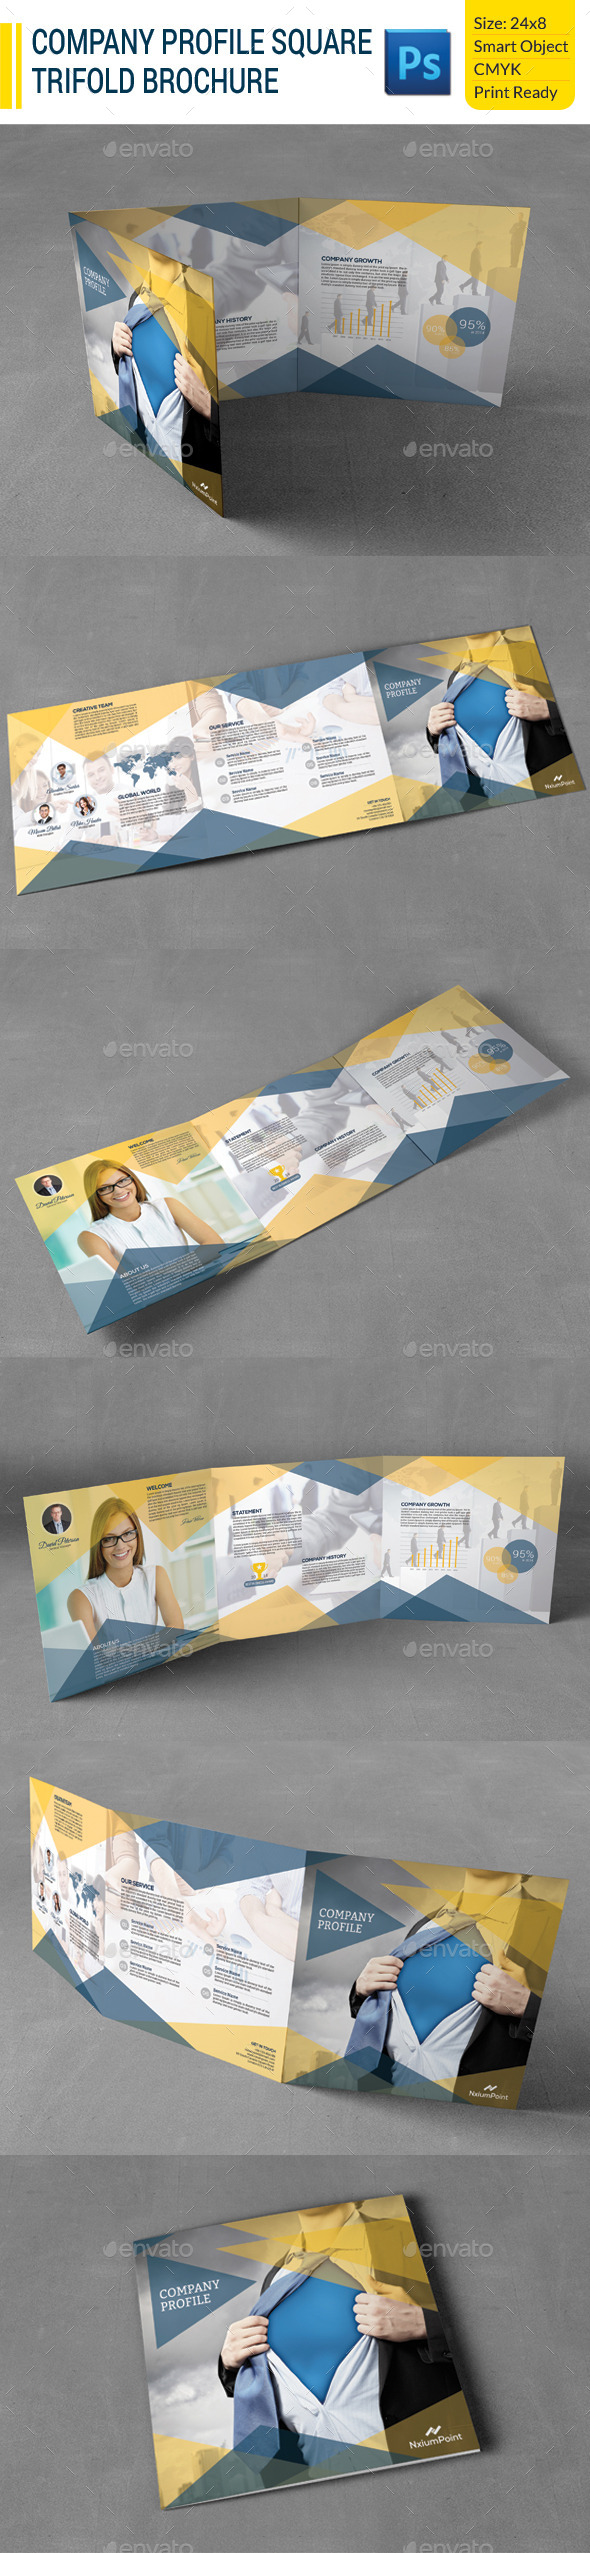 Company Profile Square Trifold Brochure - Corporate Brochures